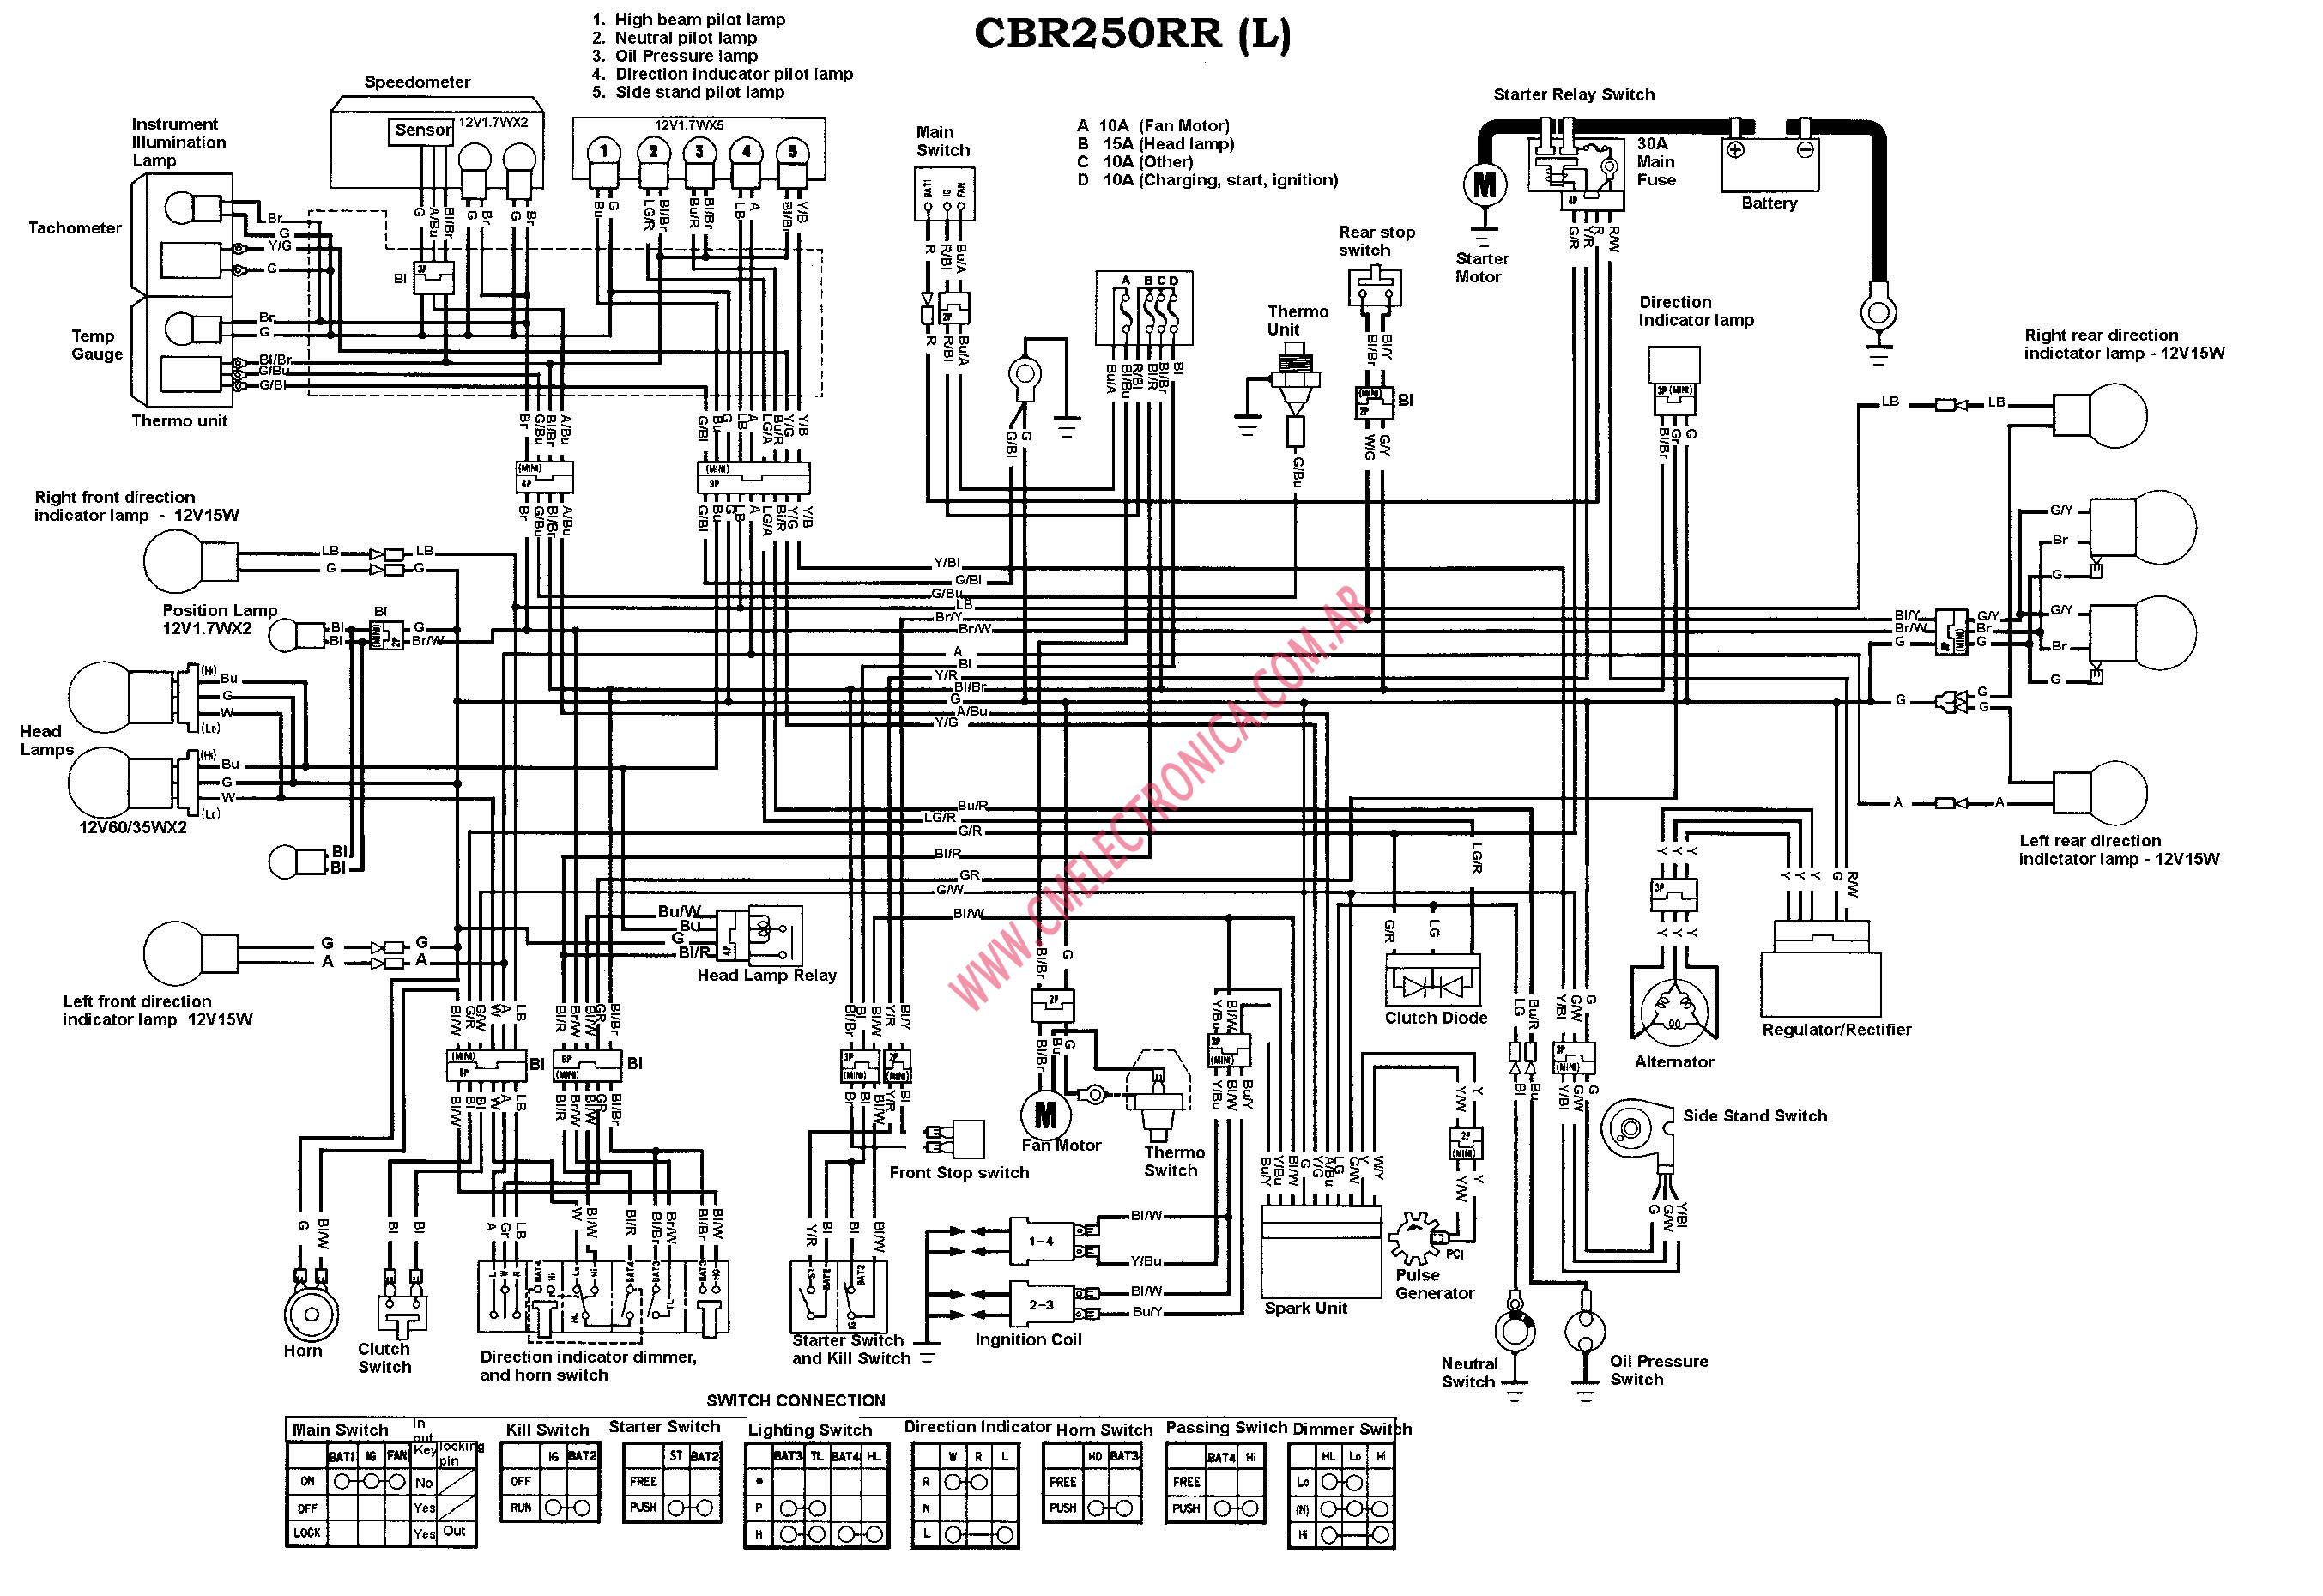 wiring diagram cbr